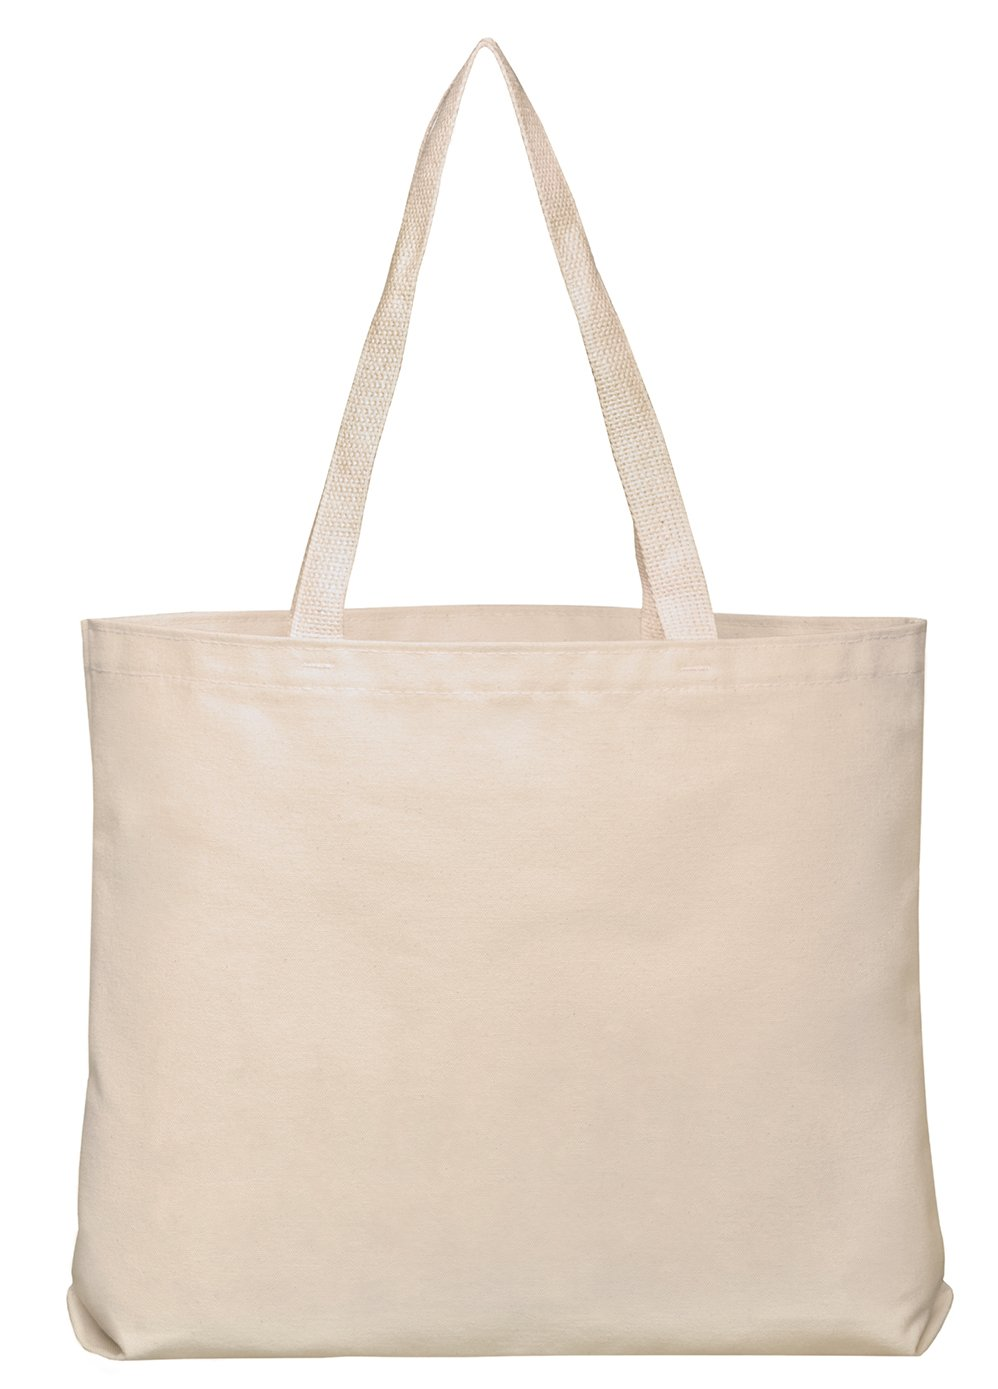 Set of 25 10oz Cotton Canvas Shoulder Tote Bags - Reusable Made in USA (Natural)